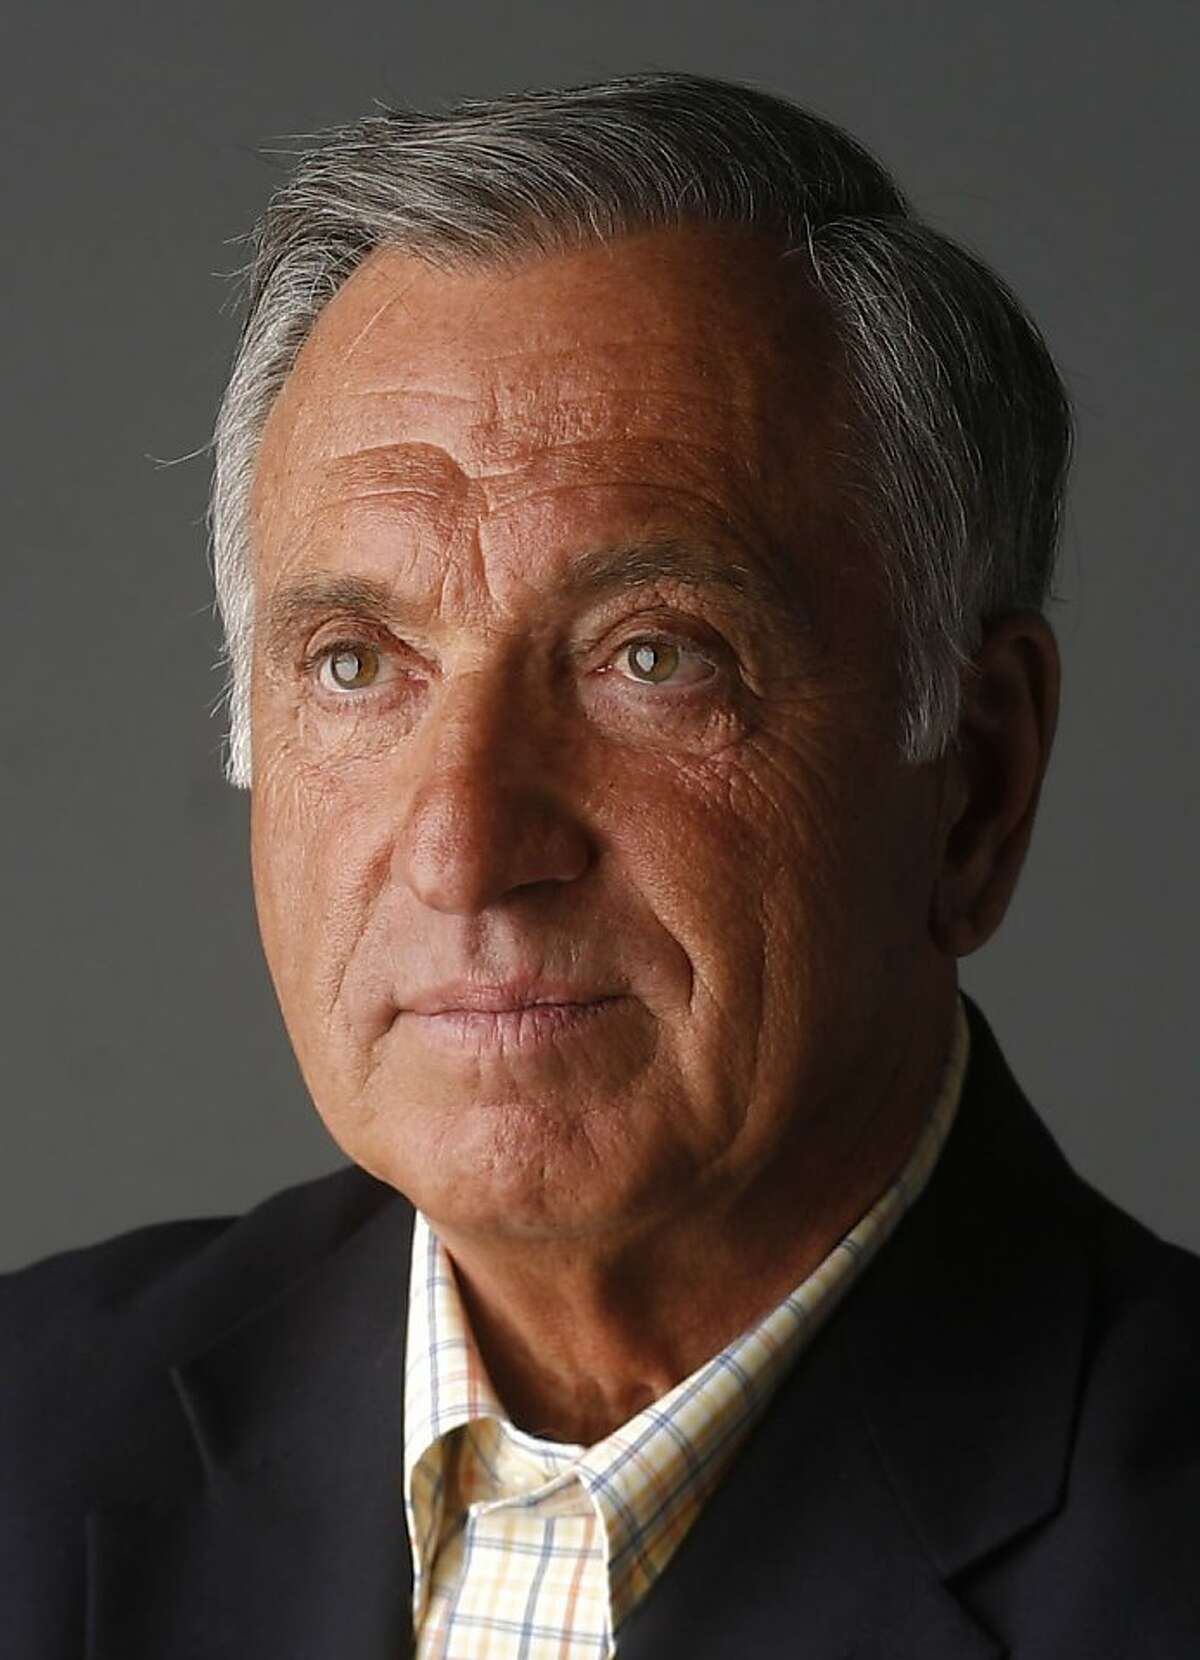 Former San Francisco Mayor Art Agnos is photographed in the Chronicle studio on 4/13/07.